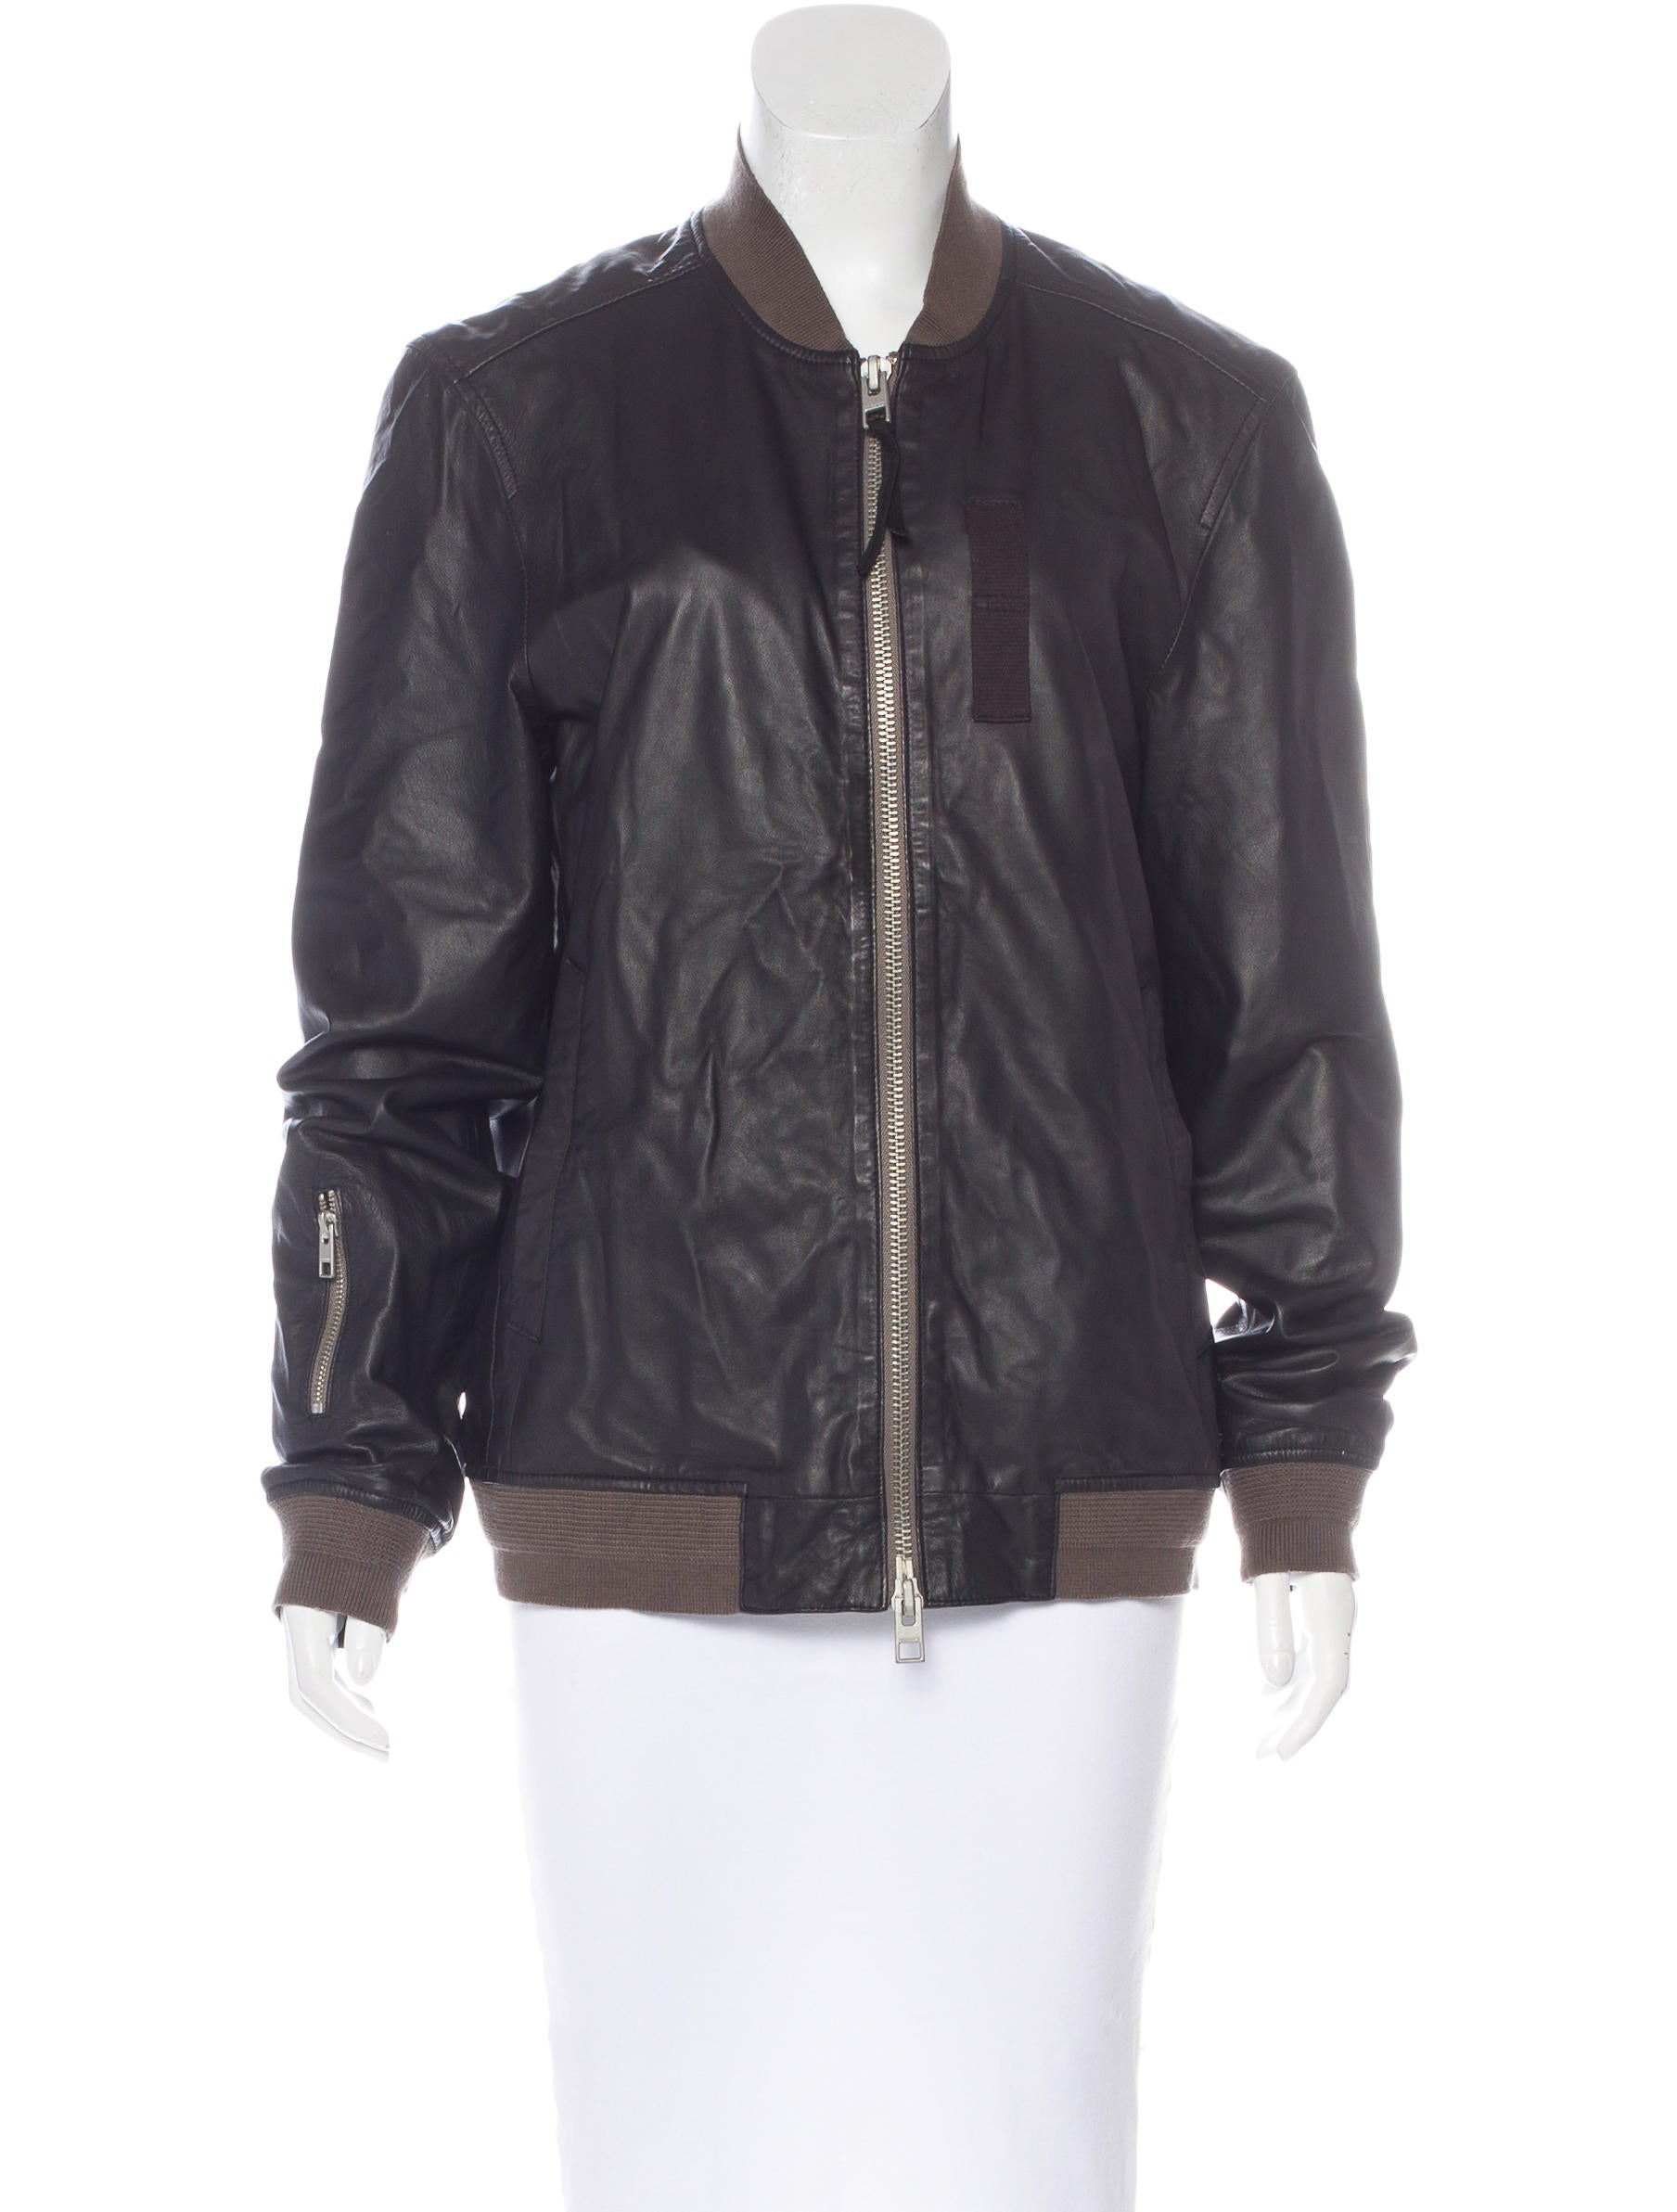 AllSaints Leather Longline Jacket - Clothing - WAQ20361   The RealReal